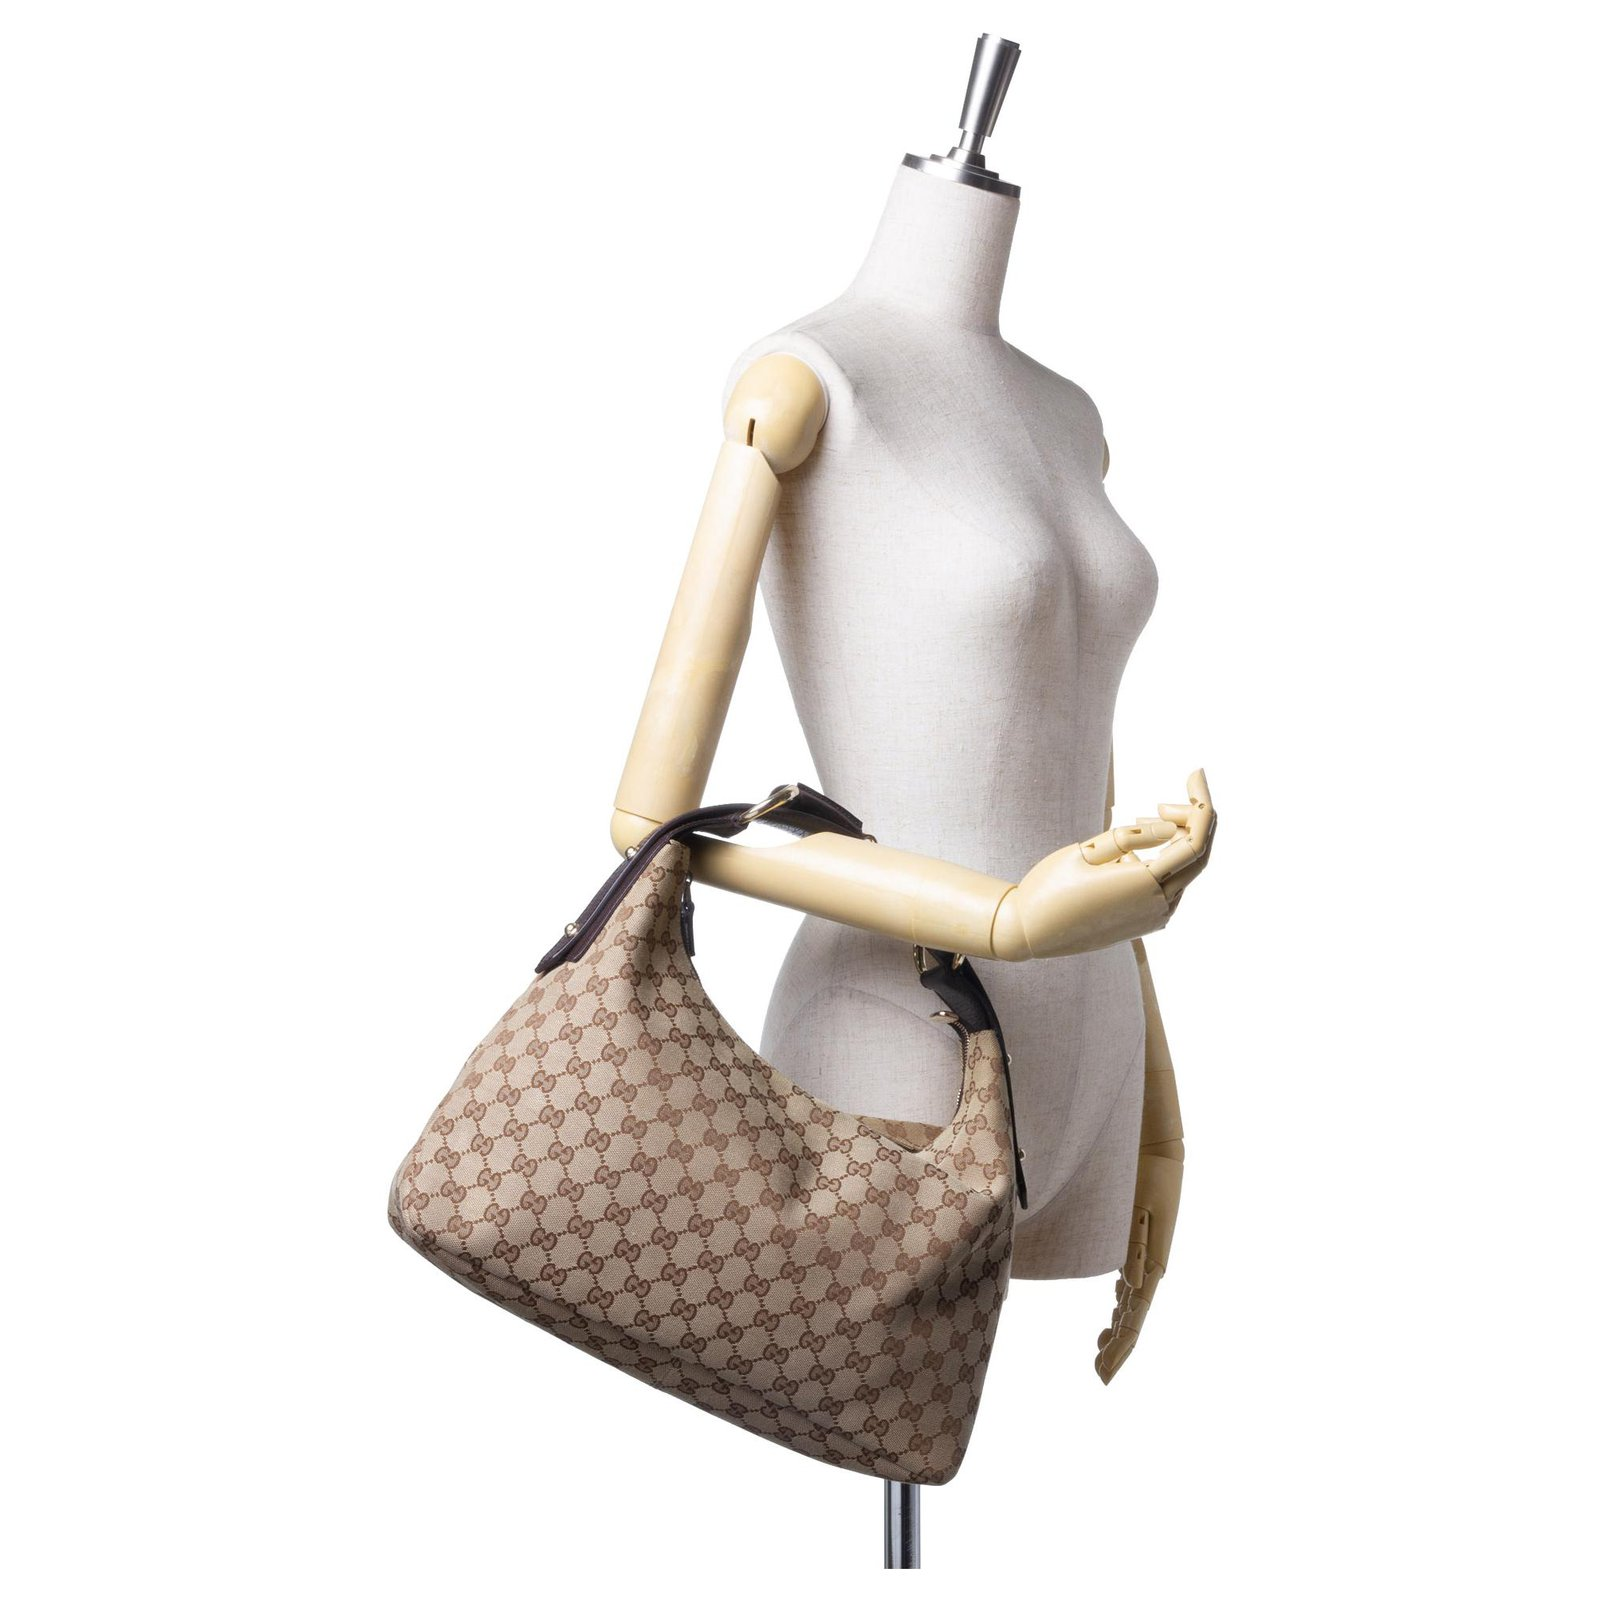 58e2a6a30706 Gucci Gucci Brown GG Jacquard Horsebit Hobo Bag Handbags  Leather,Other,Cloth Brown,Beige,Dark brown ref.124213 - Joli Closet